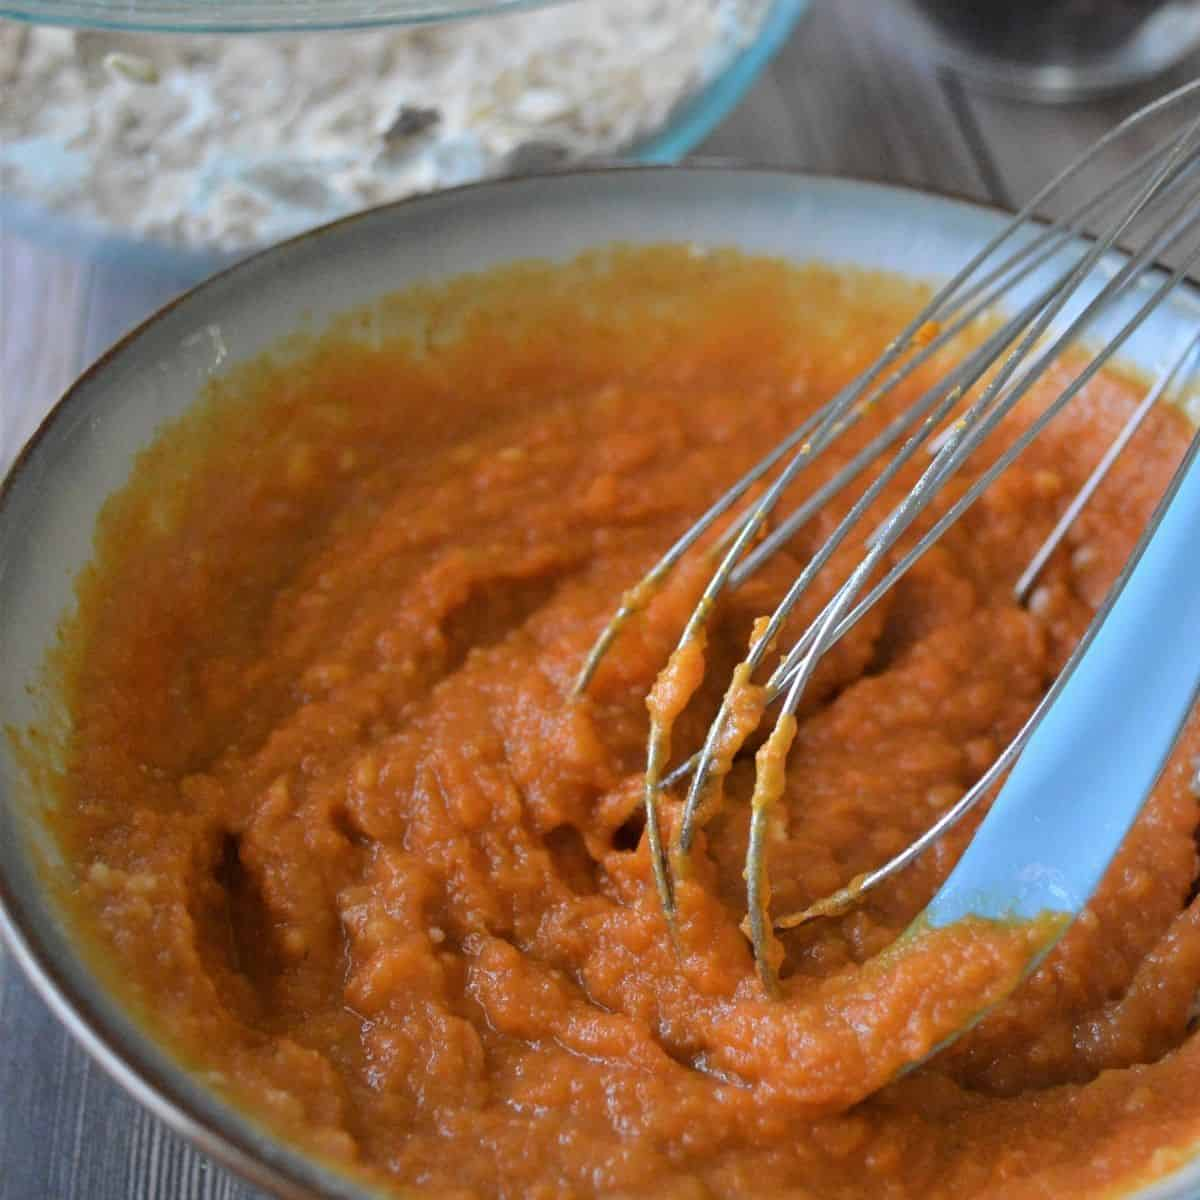 Pumpkin puree mixed to be added to the dry ingredients to make pumpkin cranberry oat bars.